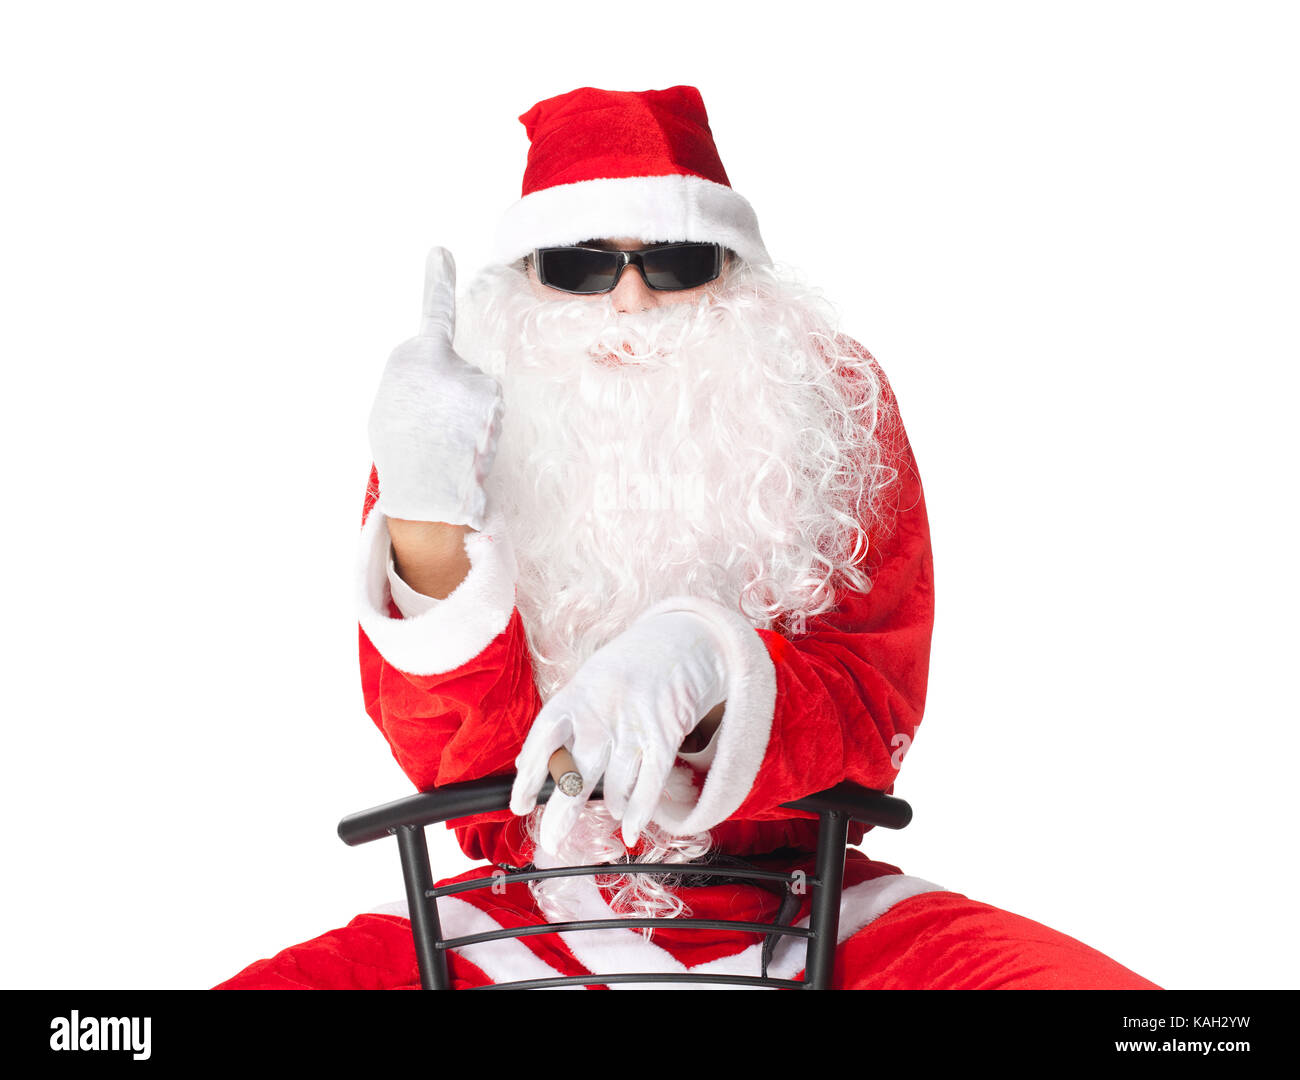 Santa Claus showing the middle finger sitting in a chair isolated on white background - Stock Image